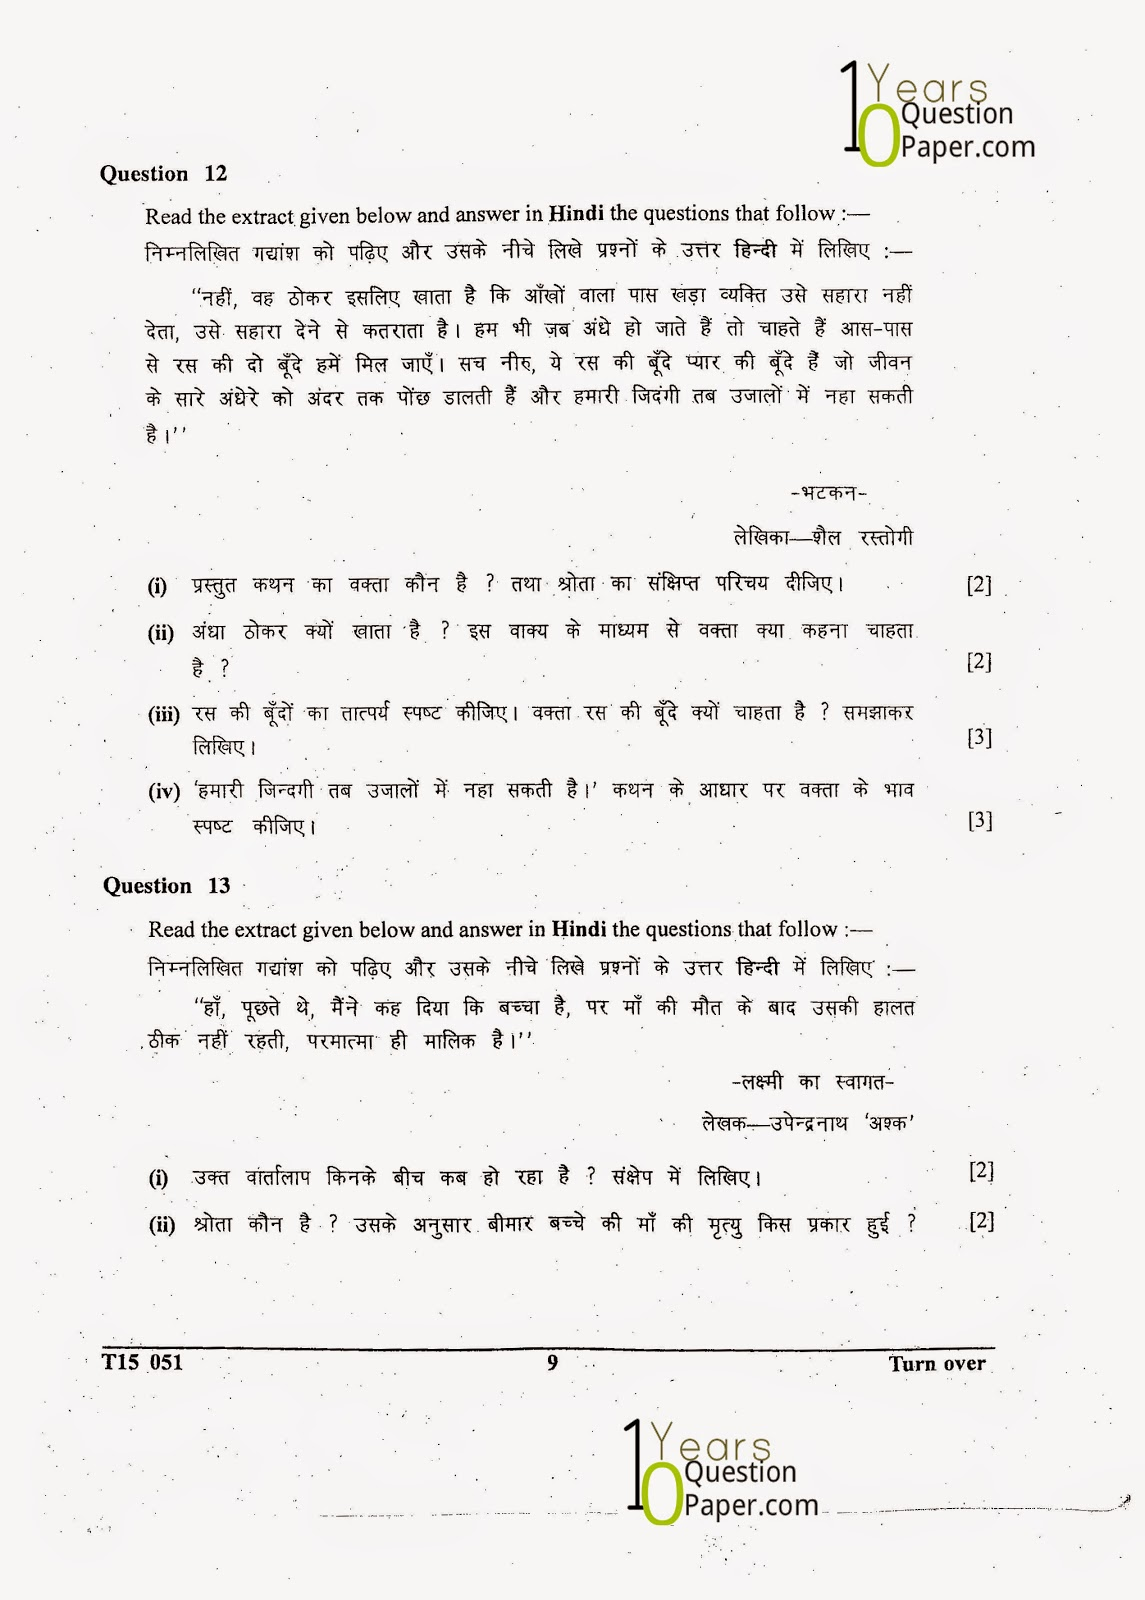 worksheet Grade 4 Literacy Worksheets workbooks reading and comprehension worksheets for grade 4 free icse 2015 hindi class x board question paper 10 years for